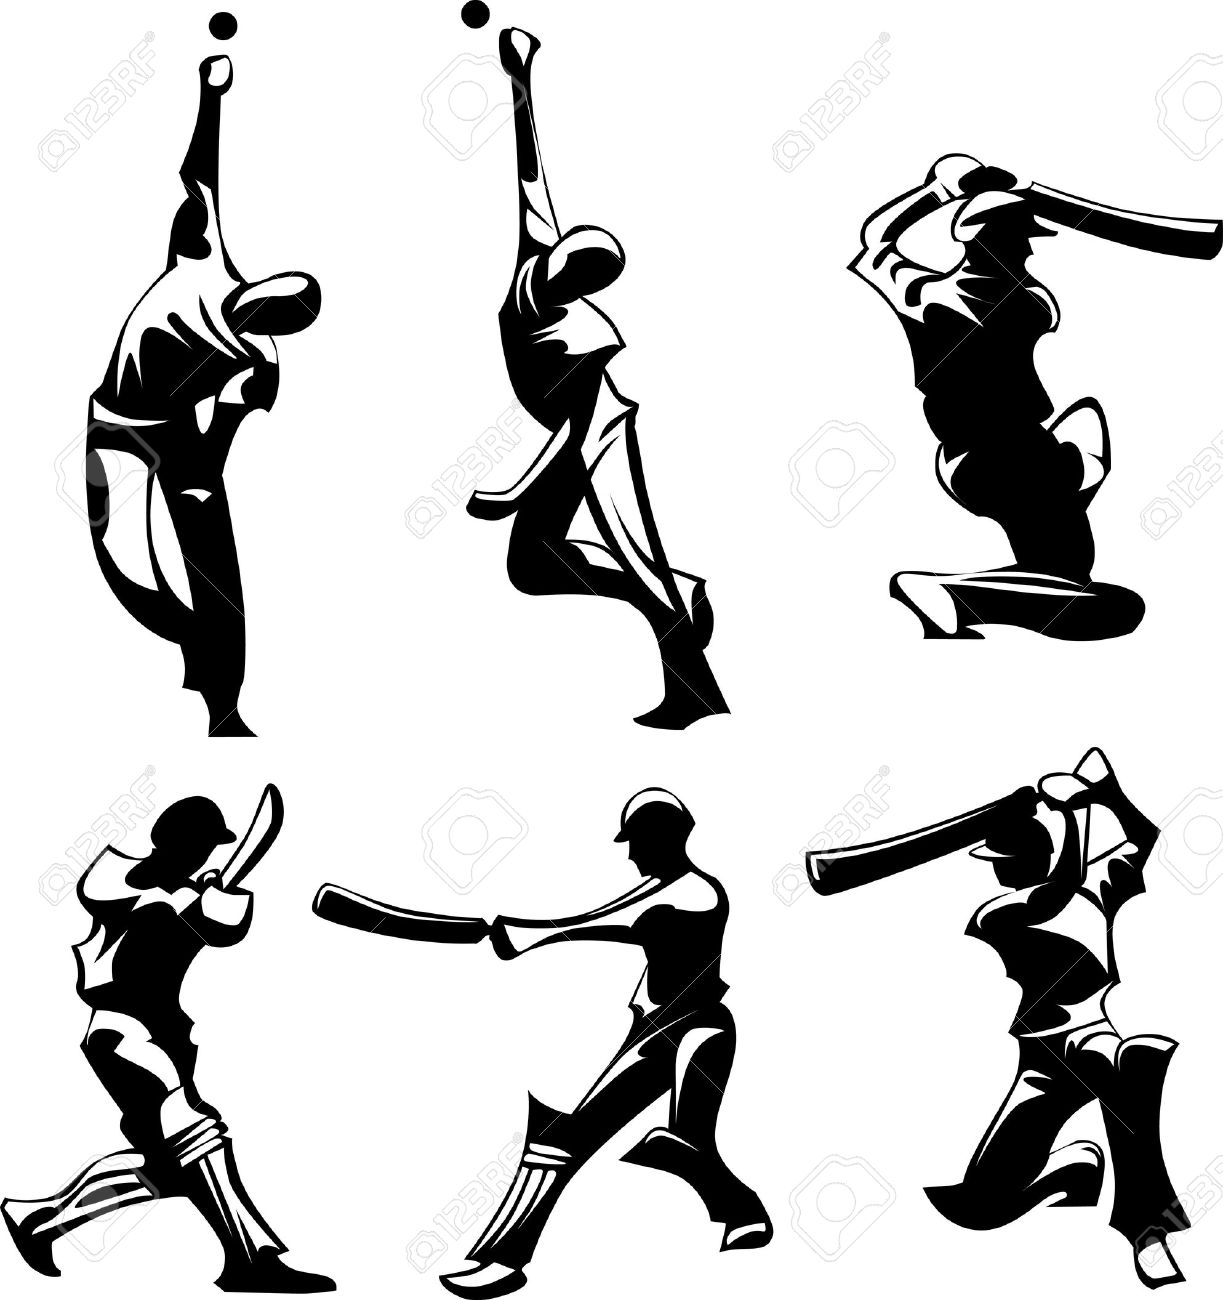 Bowling Cricket Drawing Images of Cricket Players